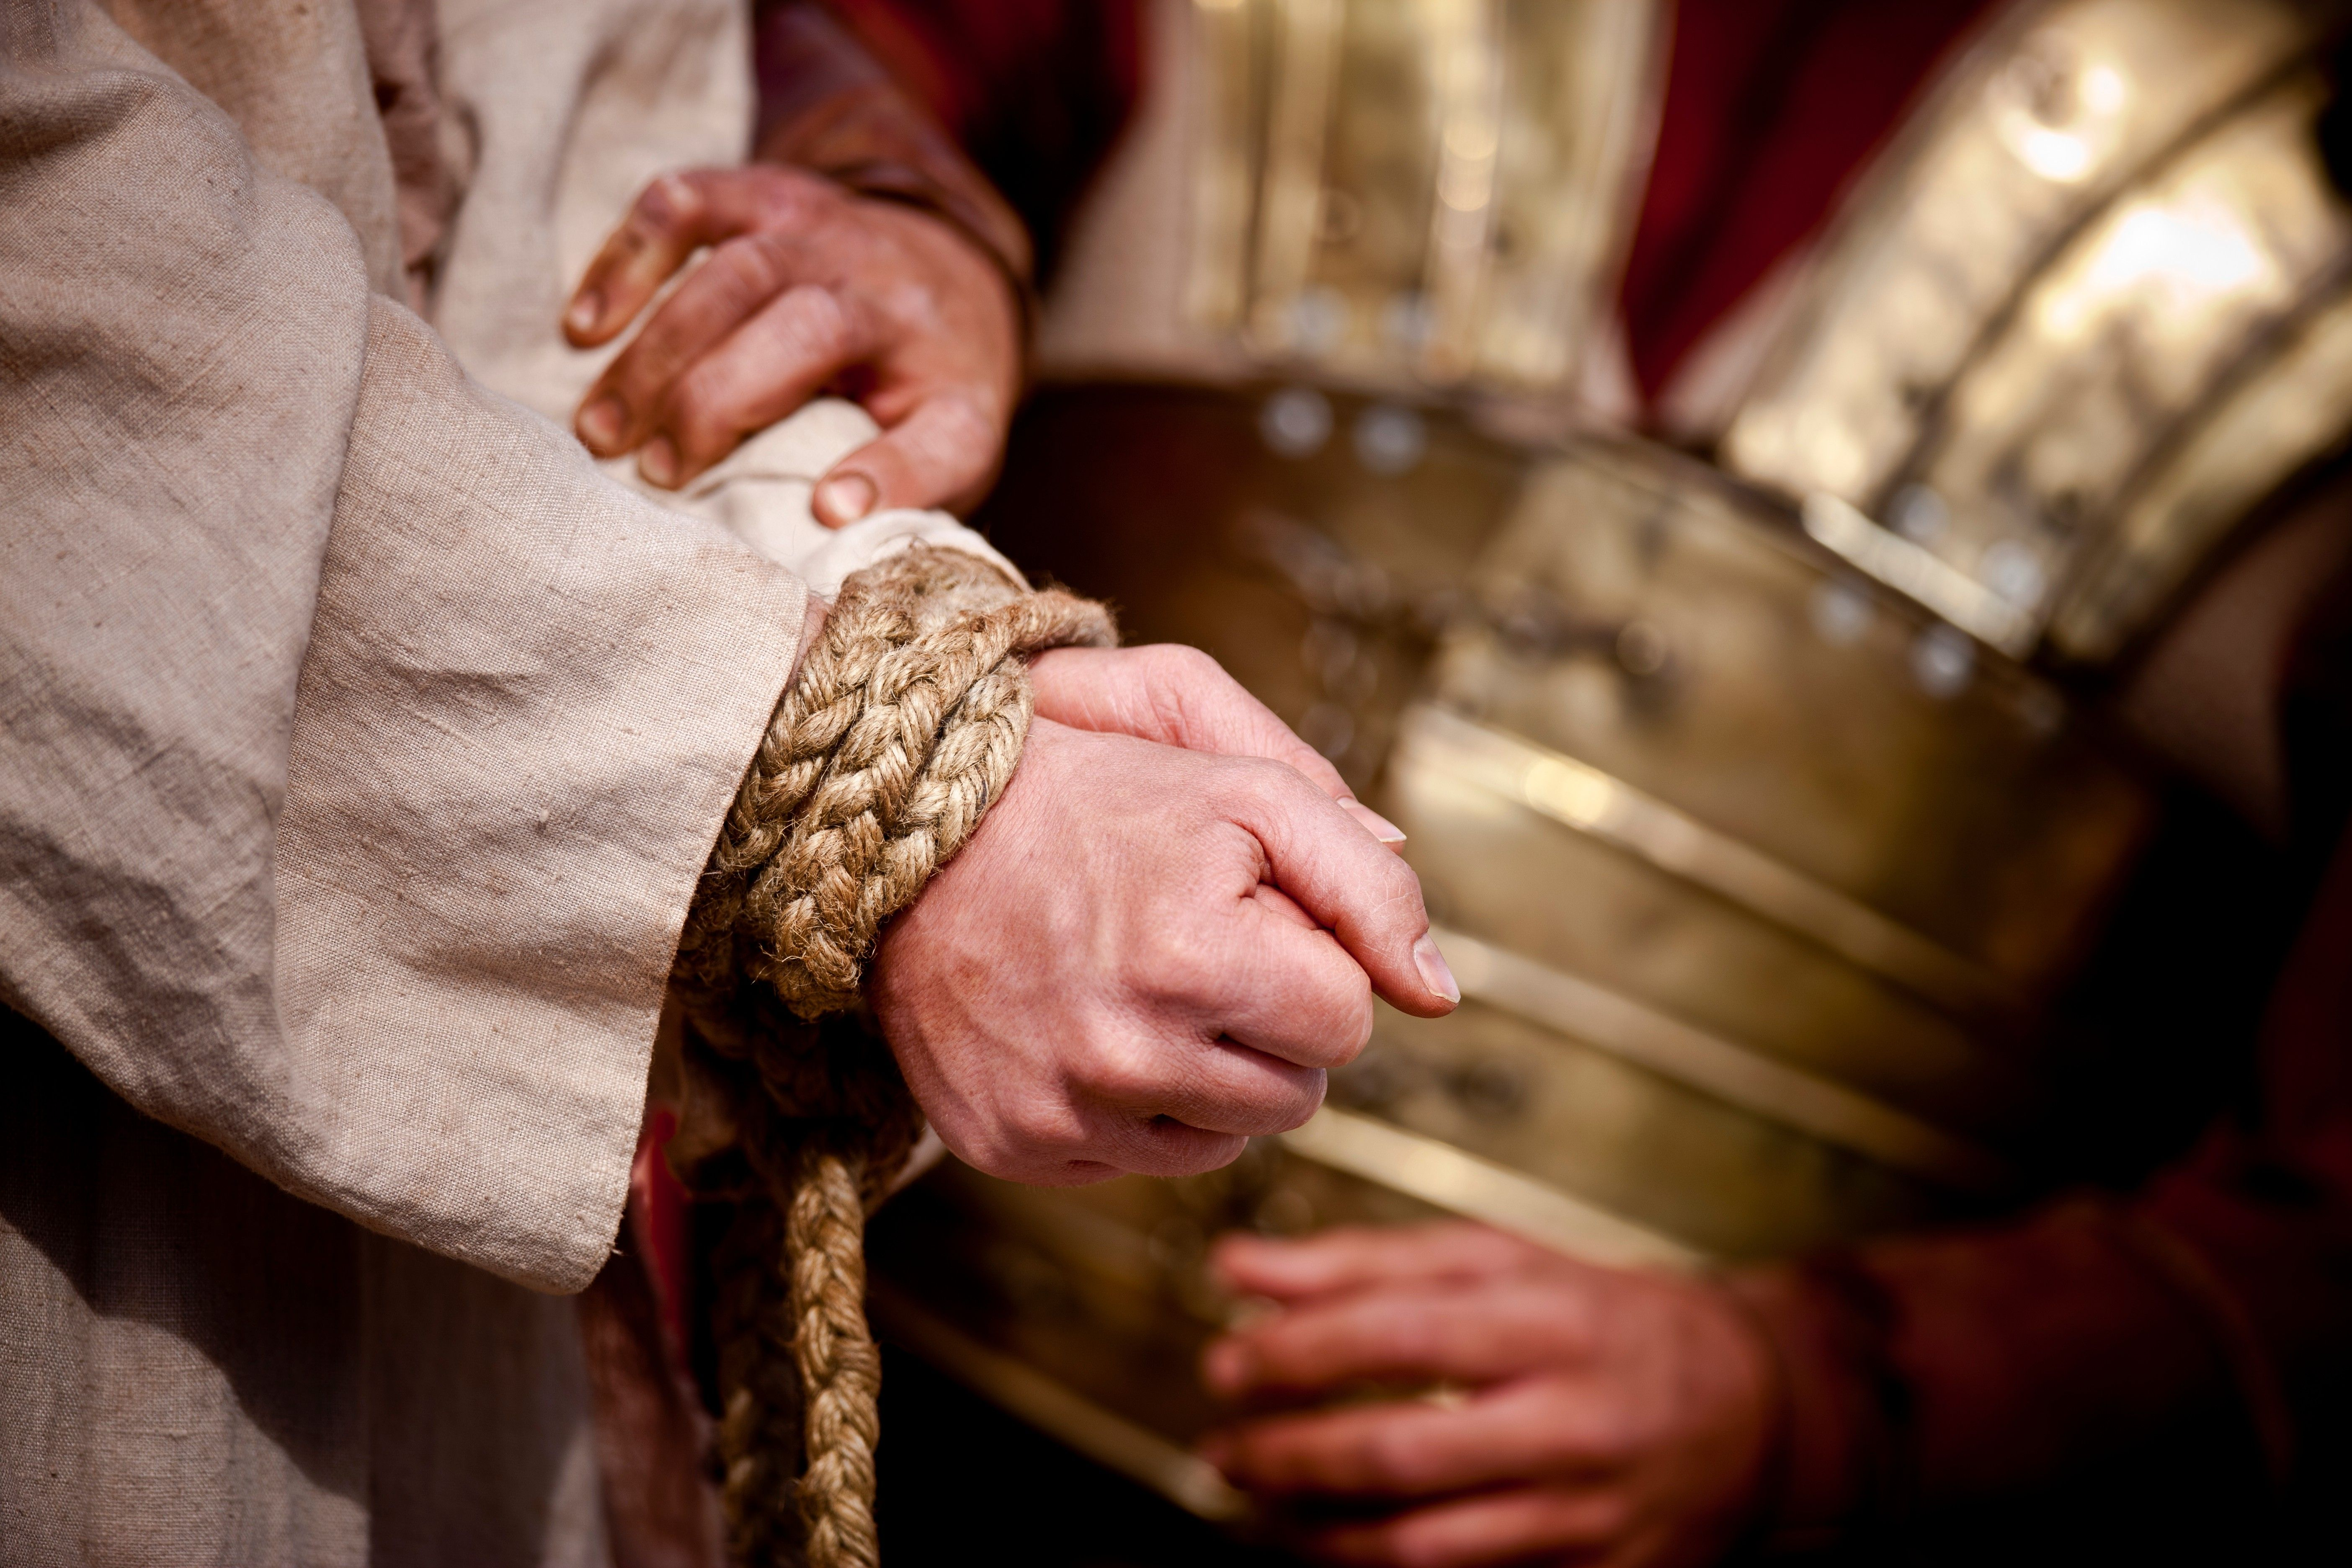 A Roman soldier binds the hands of Christ together.